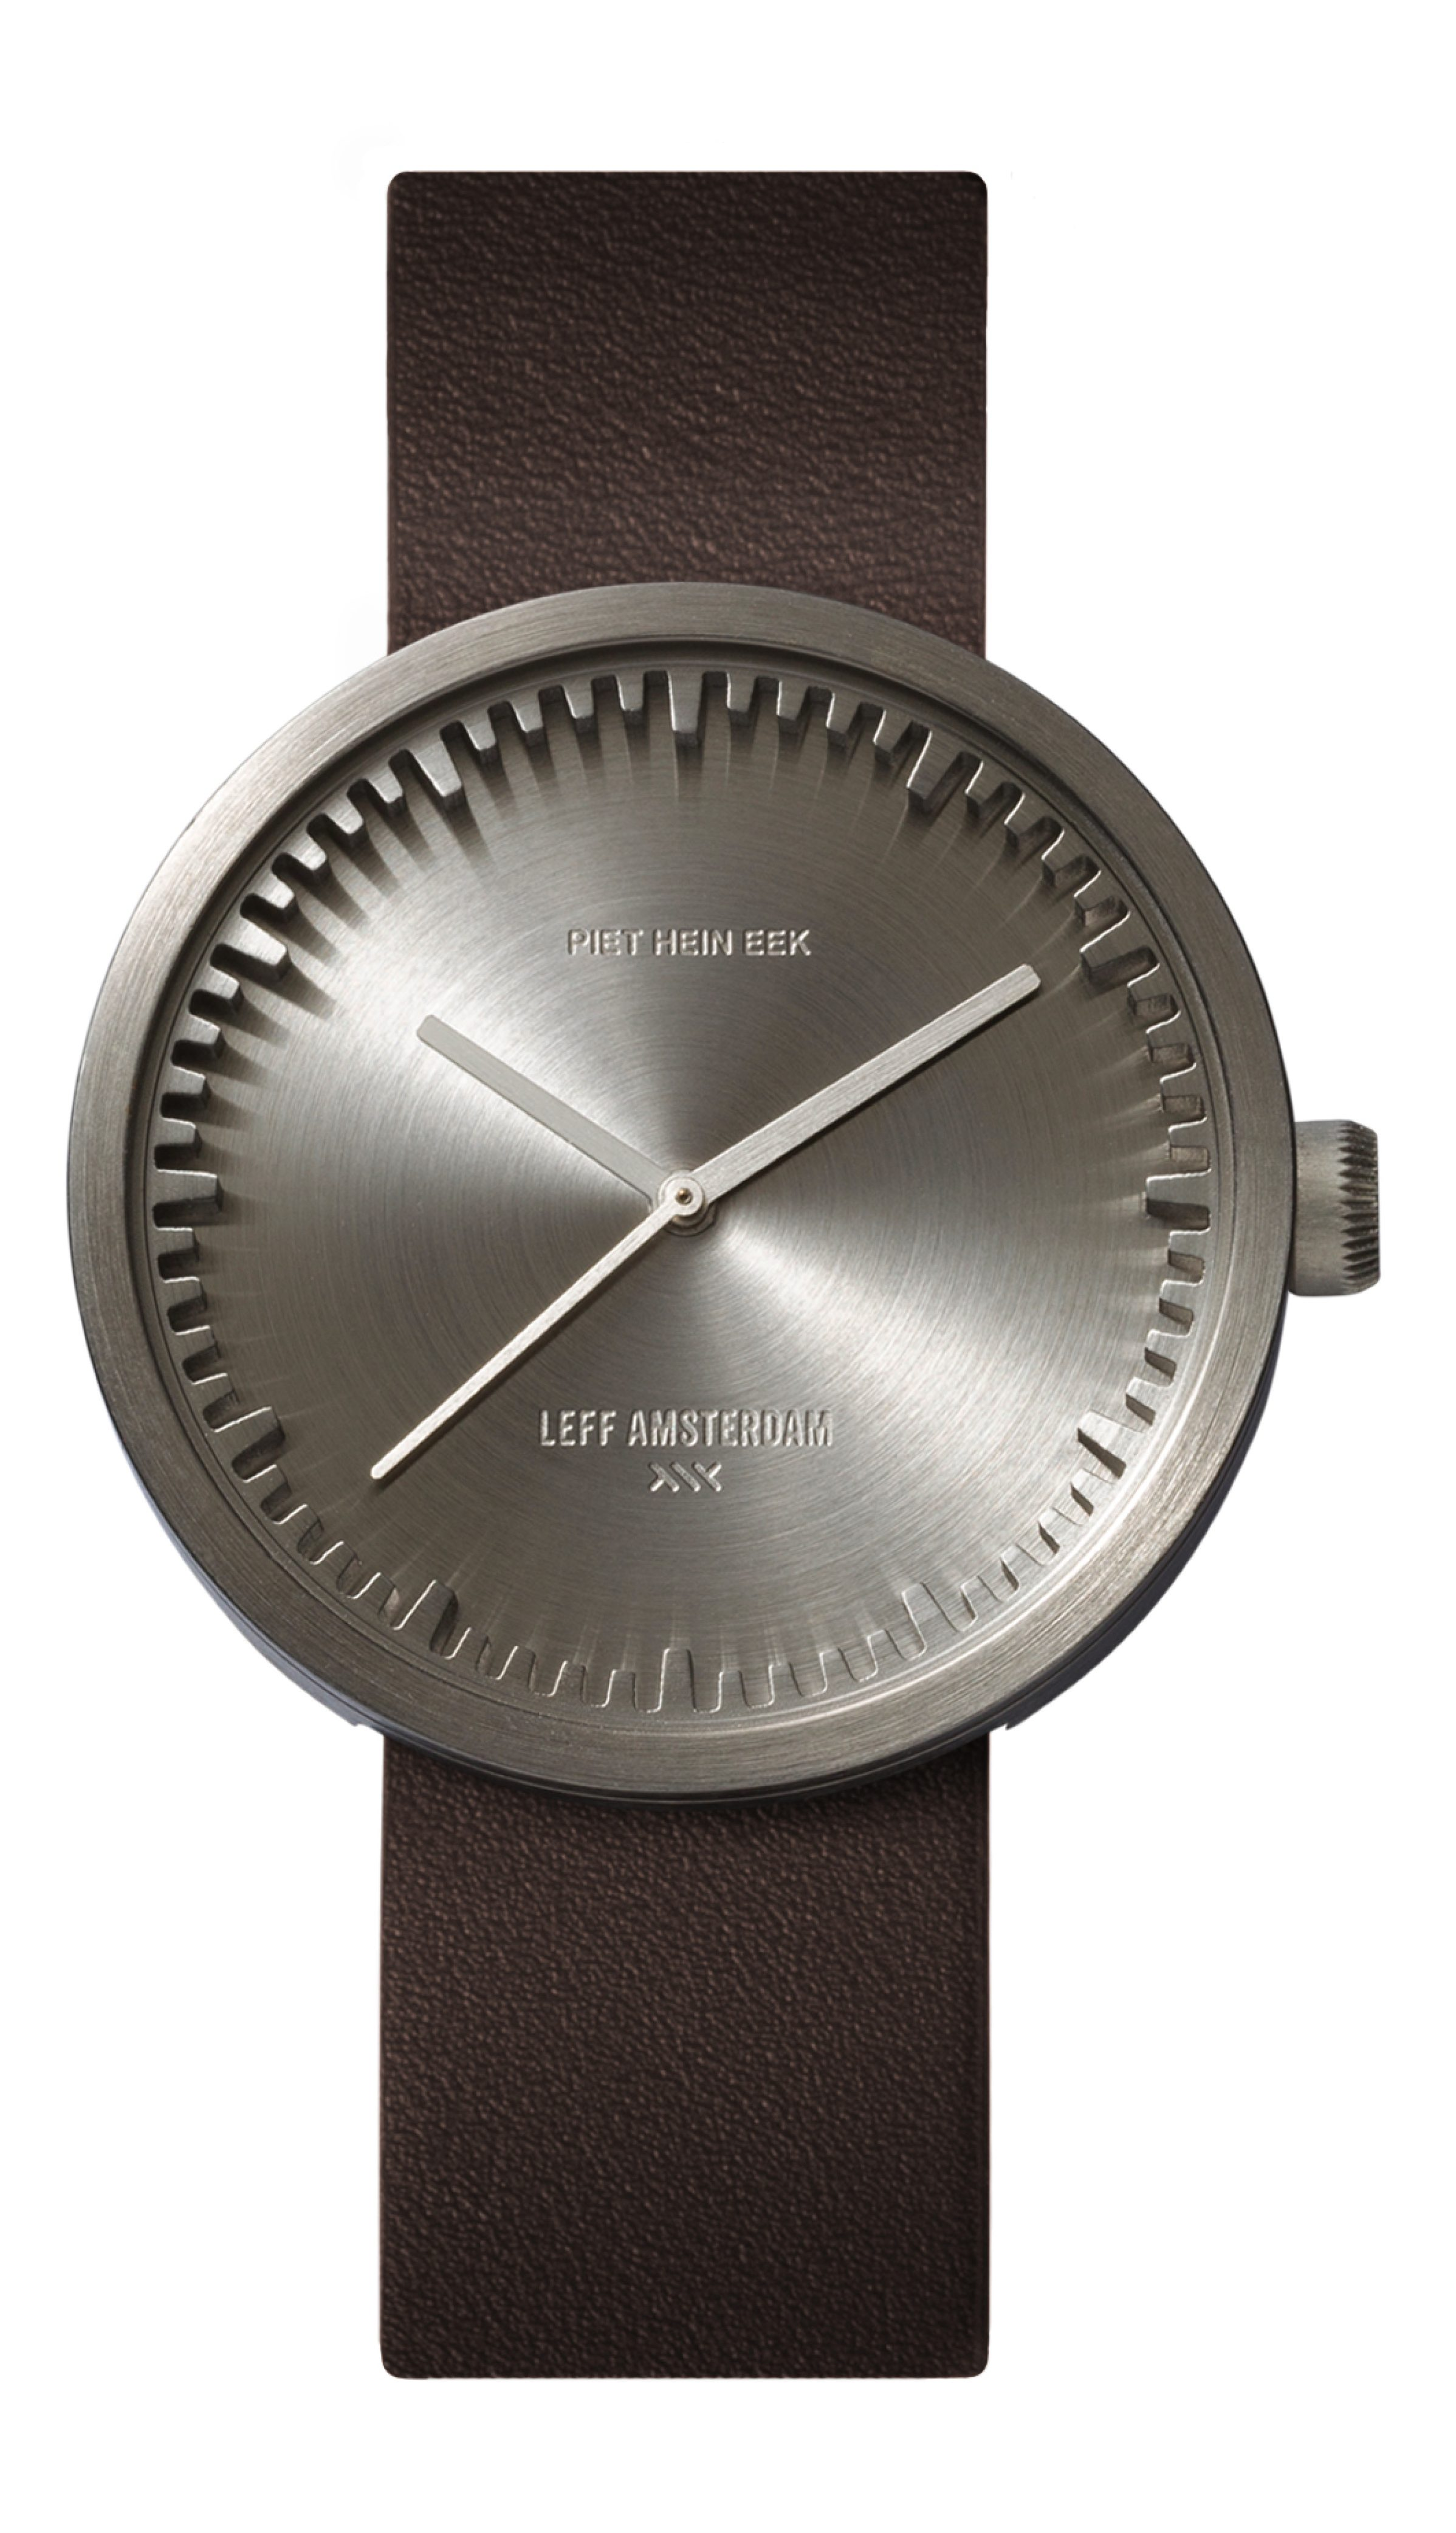 D42 steel case brown leather strap tube watch leff amsterdam design by piet hein eek_front